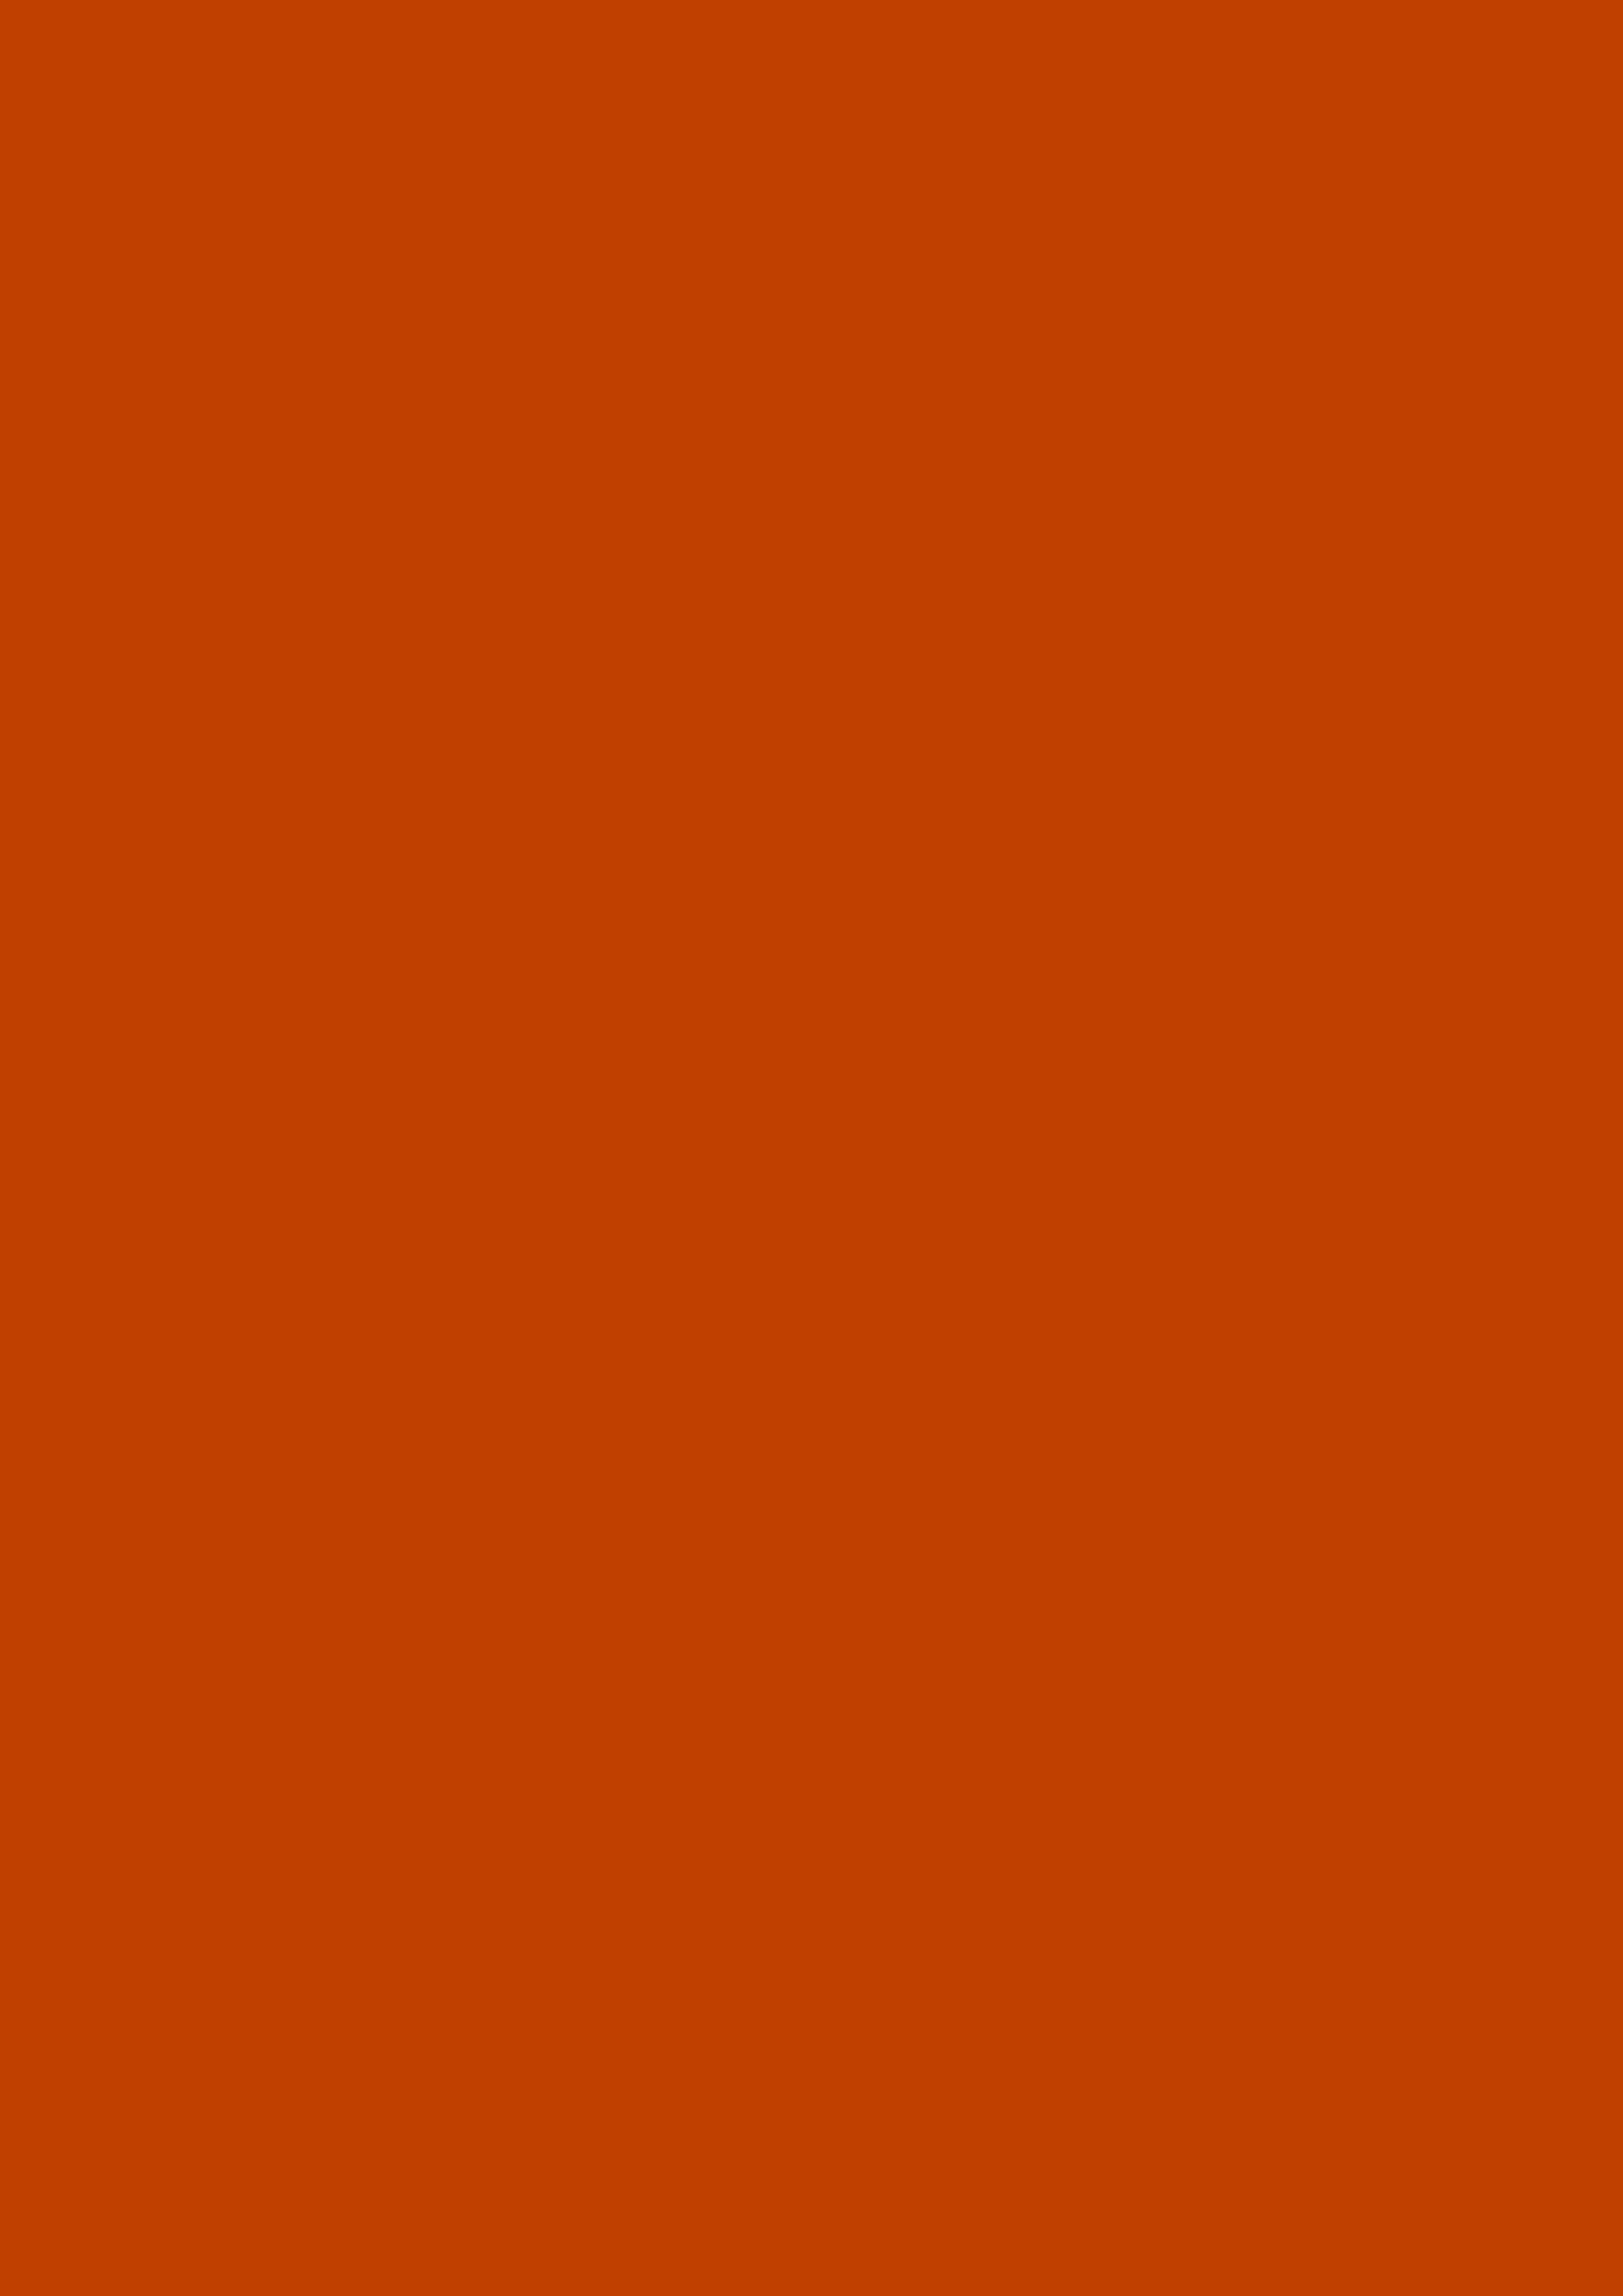 2480x3508 Mahogany Solid Color Background